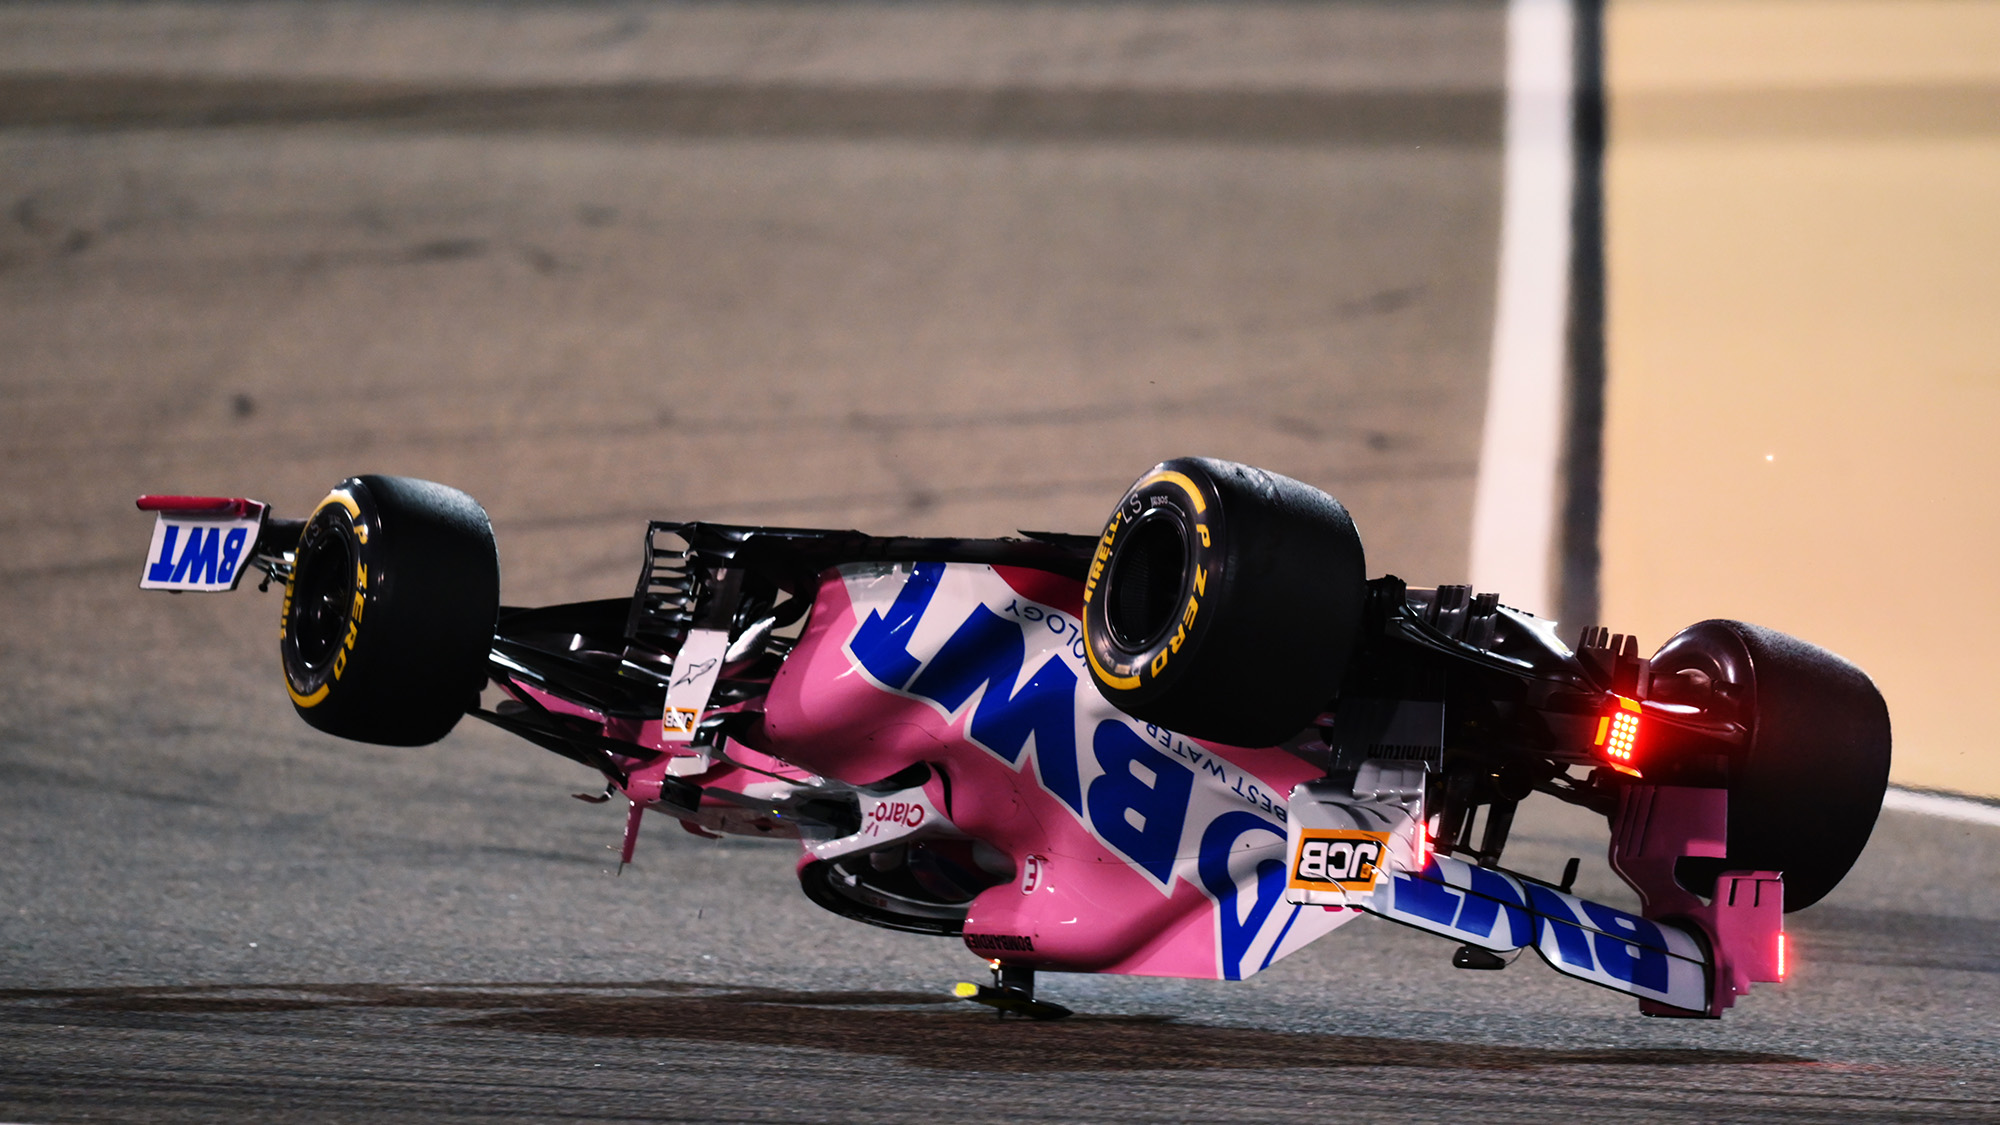 Lance Stroll's Racing Point upside down at the 2020 F1 Bahrain Grand Prix